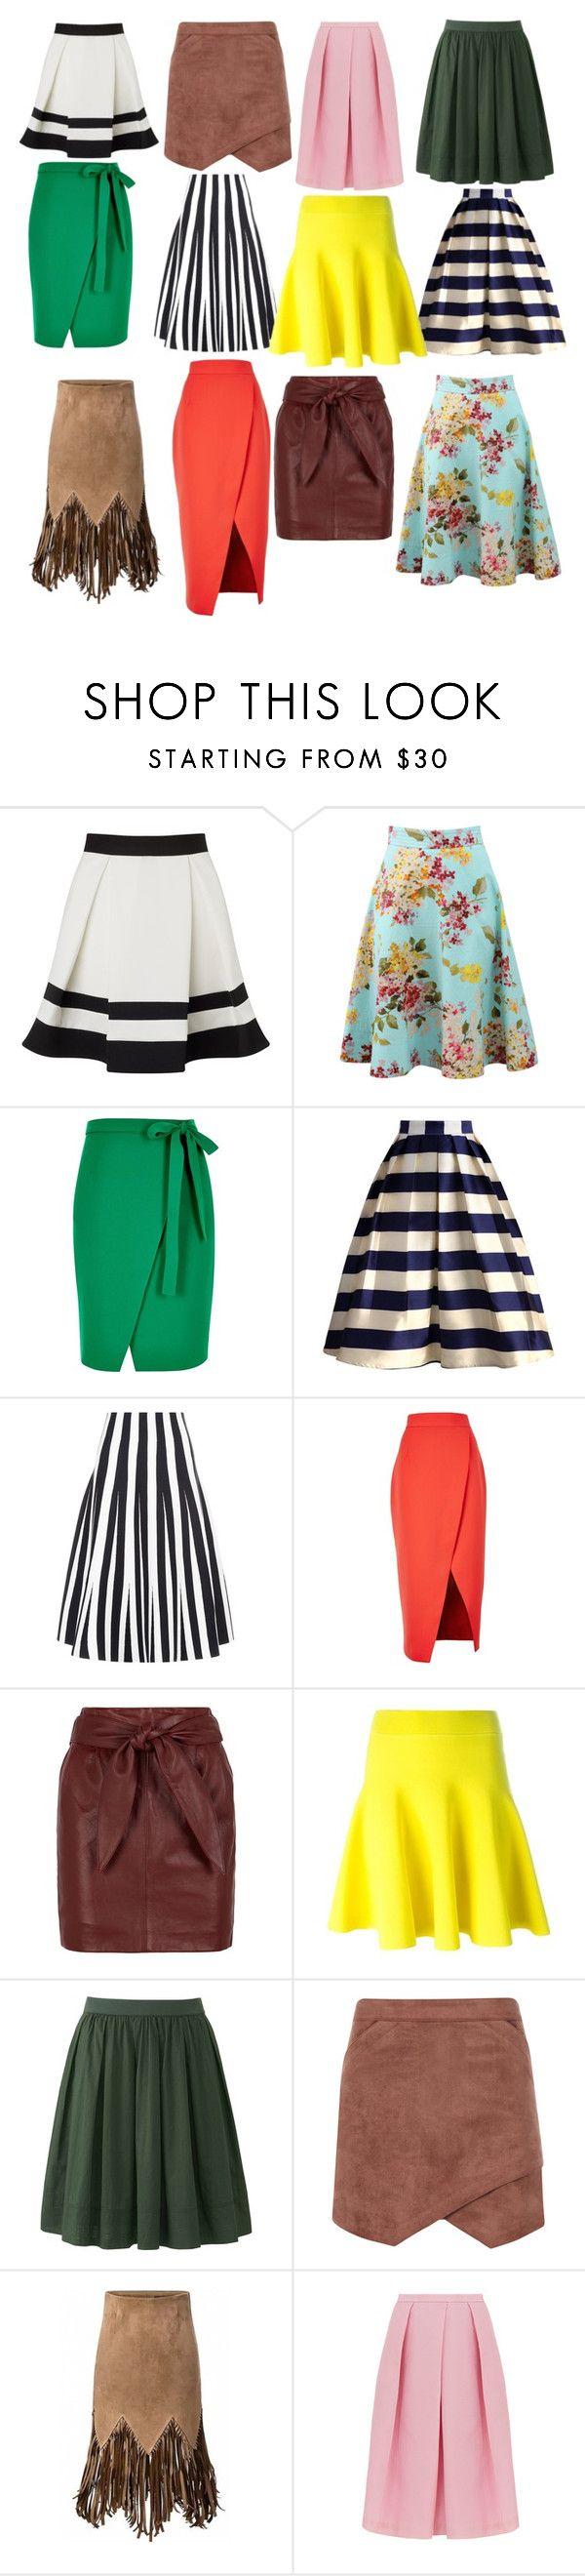 """""""Фасоны юбок"""" by siberia-natali ❤ liked on Polyvore featuring Lipsy, Blumarine, River Island, Chicwish, Alexander Wang, C/MEO COLLECTIVE, Reiss, Uniqlo, BCBGMAXAZRIA and WithChic"""